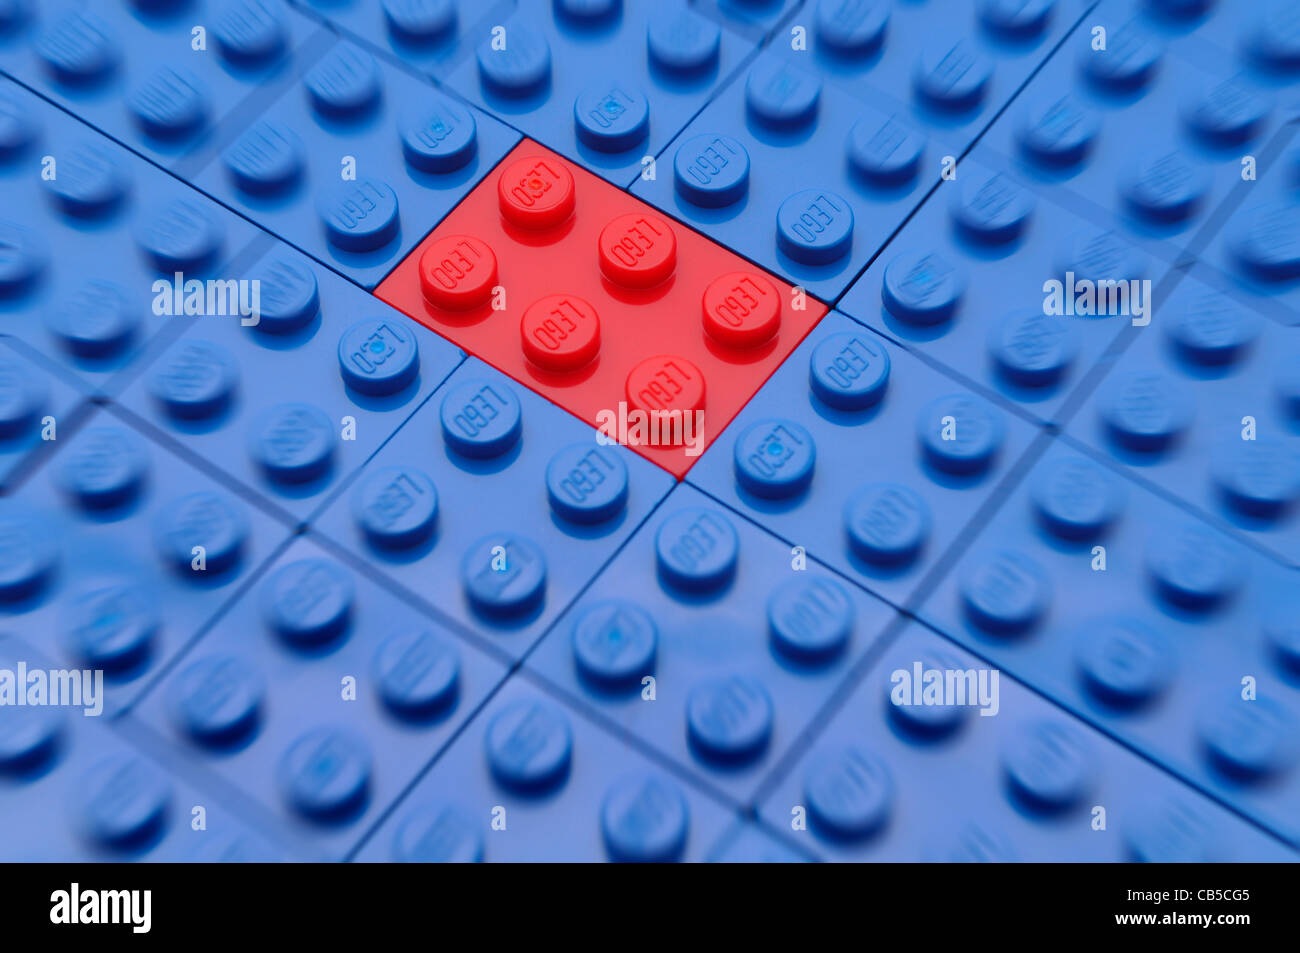 A single red toy building brick stands out among blue building bricks. - Stock Image